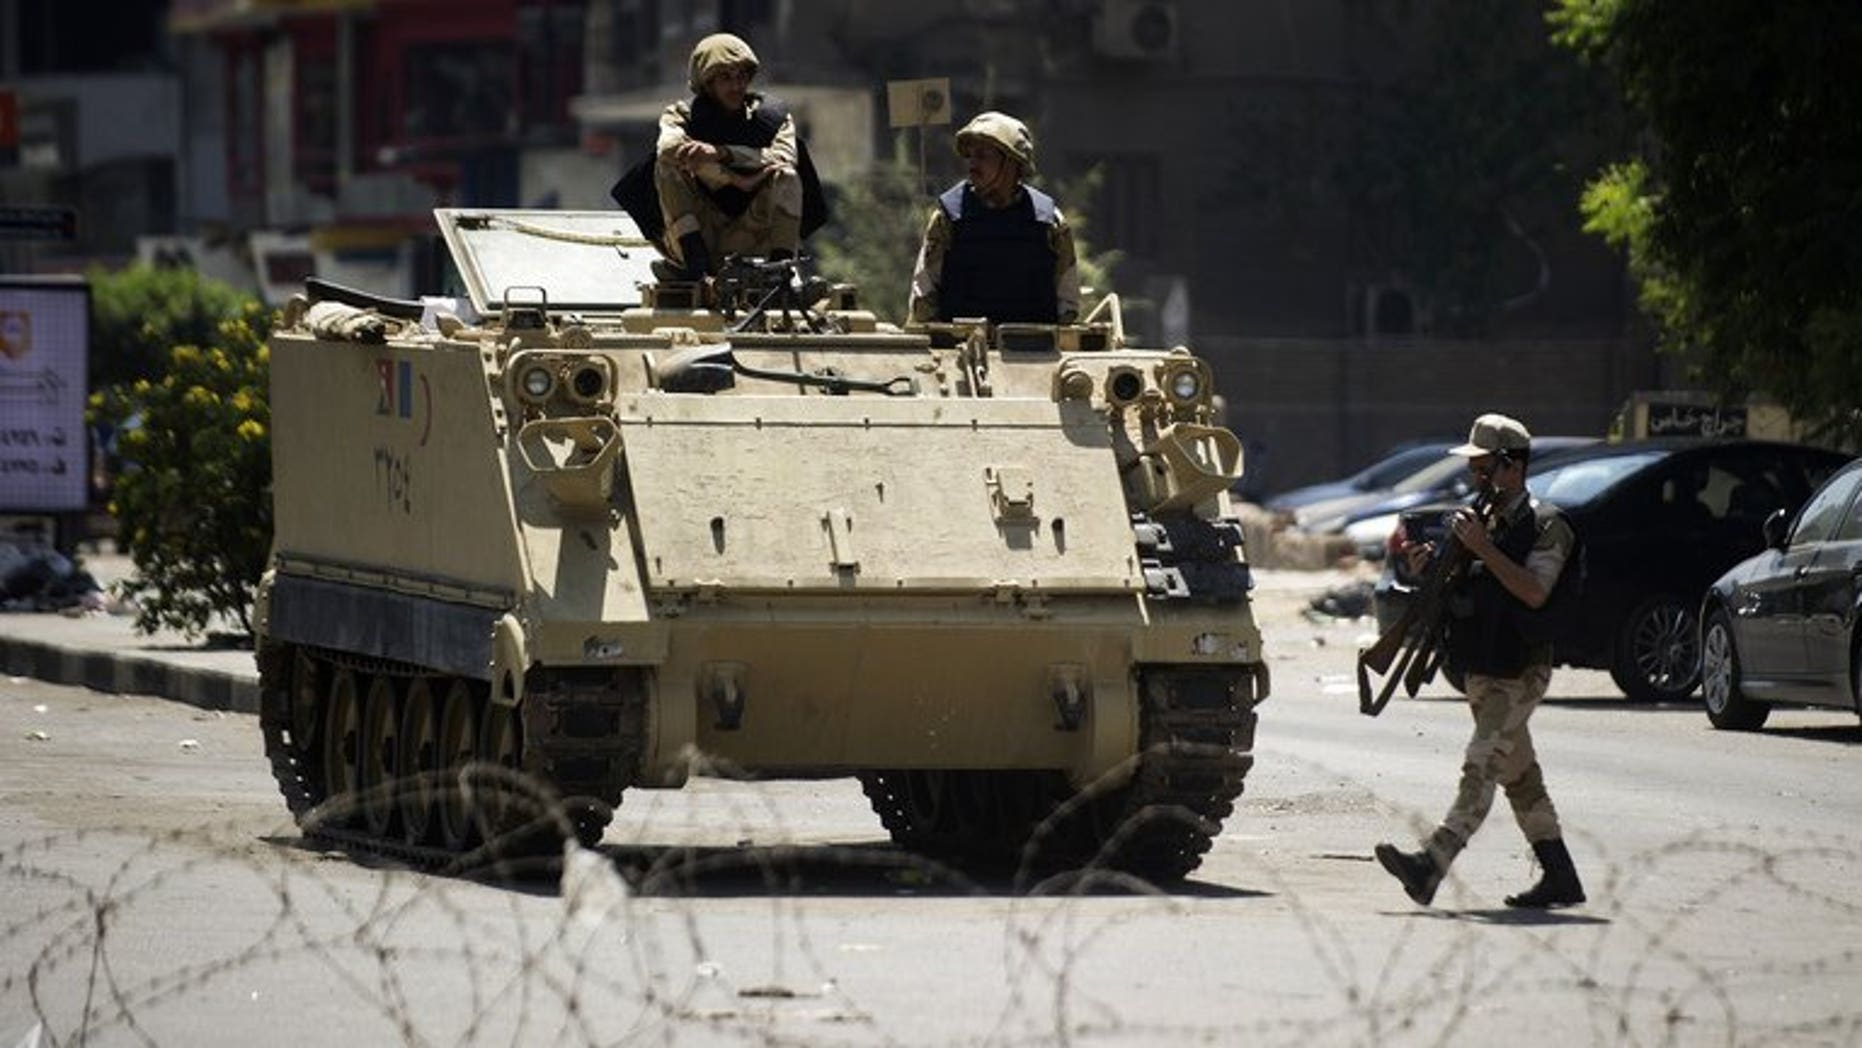 Egyptian army soldiers sit on top of an armoured personnel carrier in Cairo on August 23, 2013. Troops stormed a central Egyptian town held for over a month by hardline supporters of ousted Islamist president Mohamed Morsi who had launched a campaign against Christian residents.